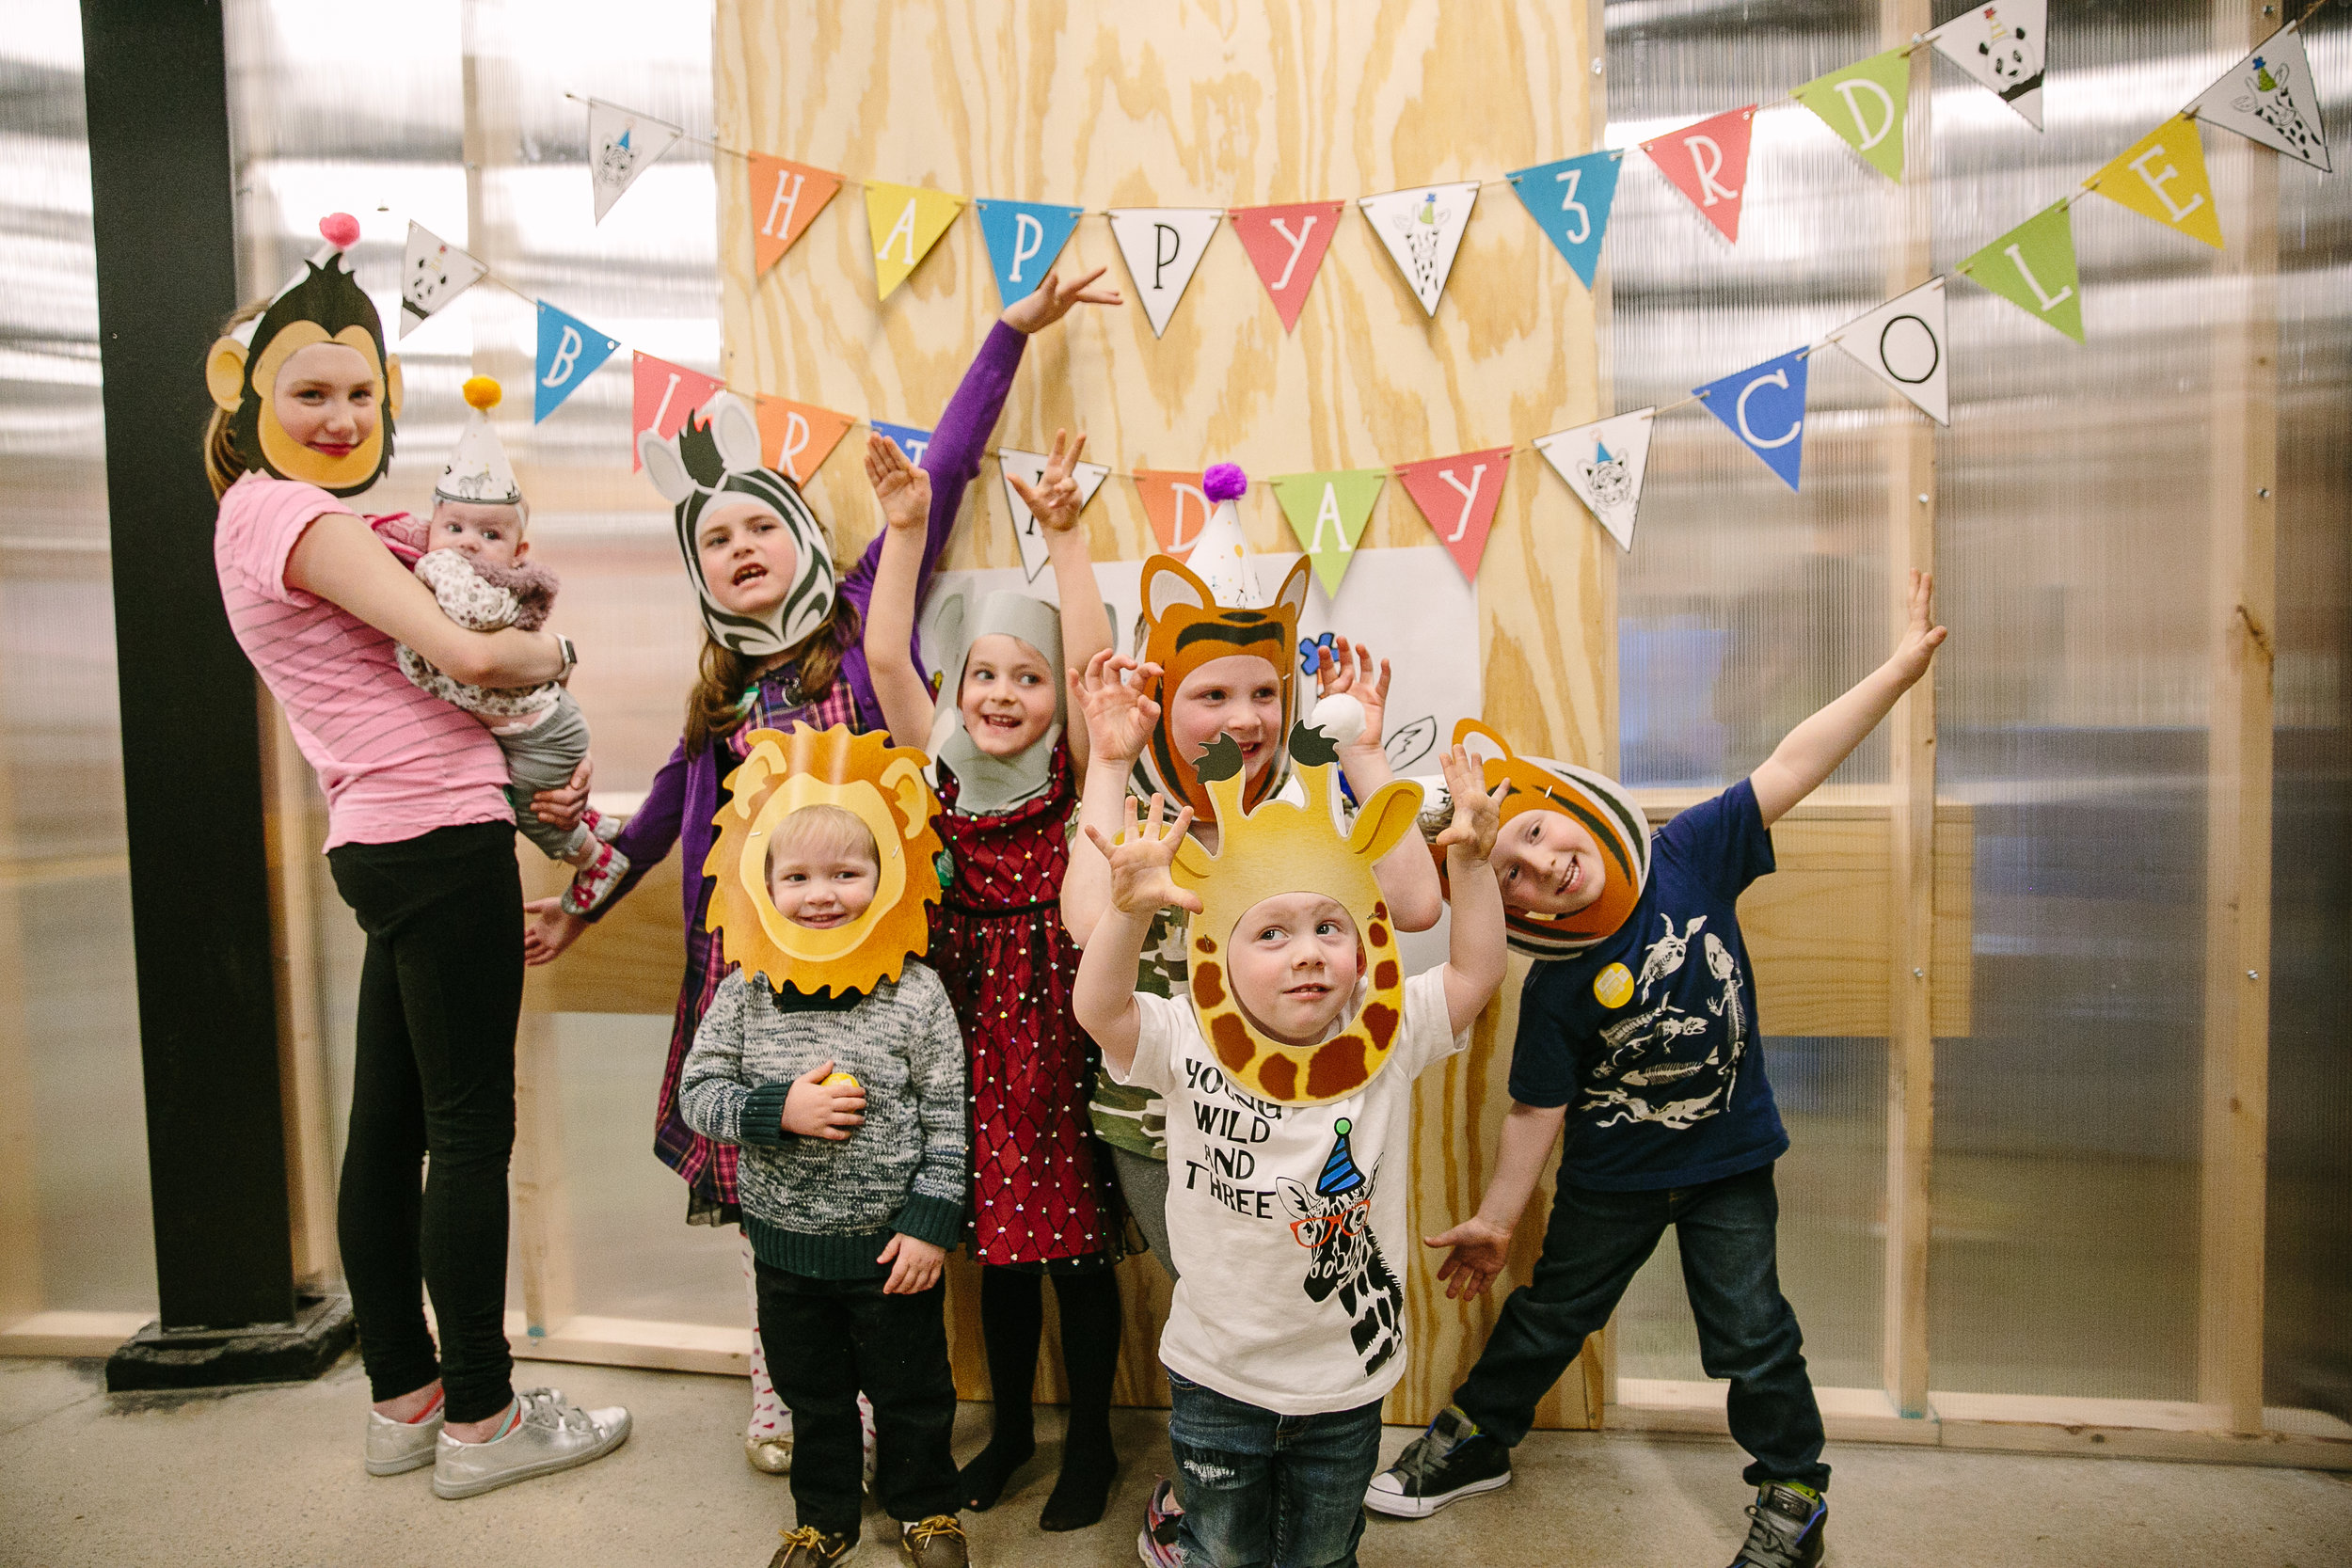 Look at those little party animals! How will you theme your party?